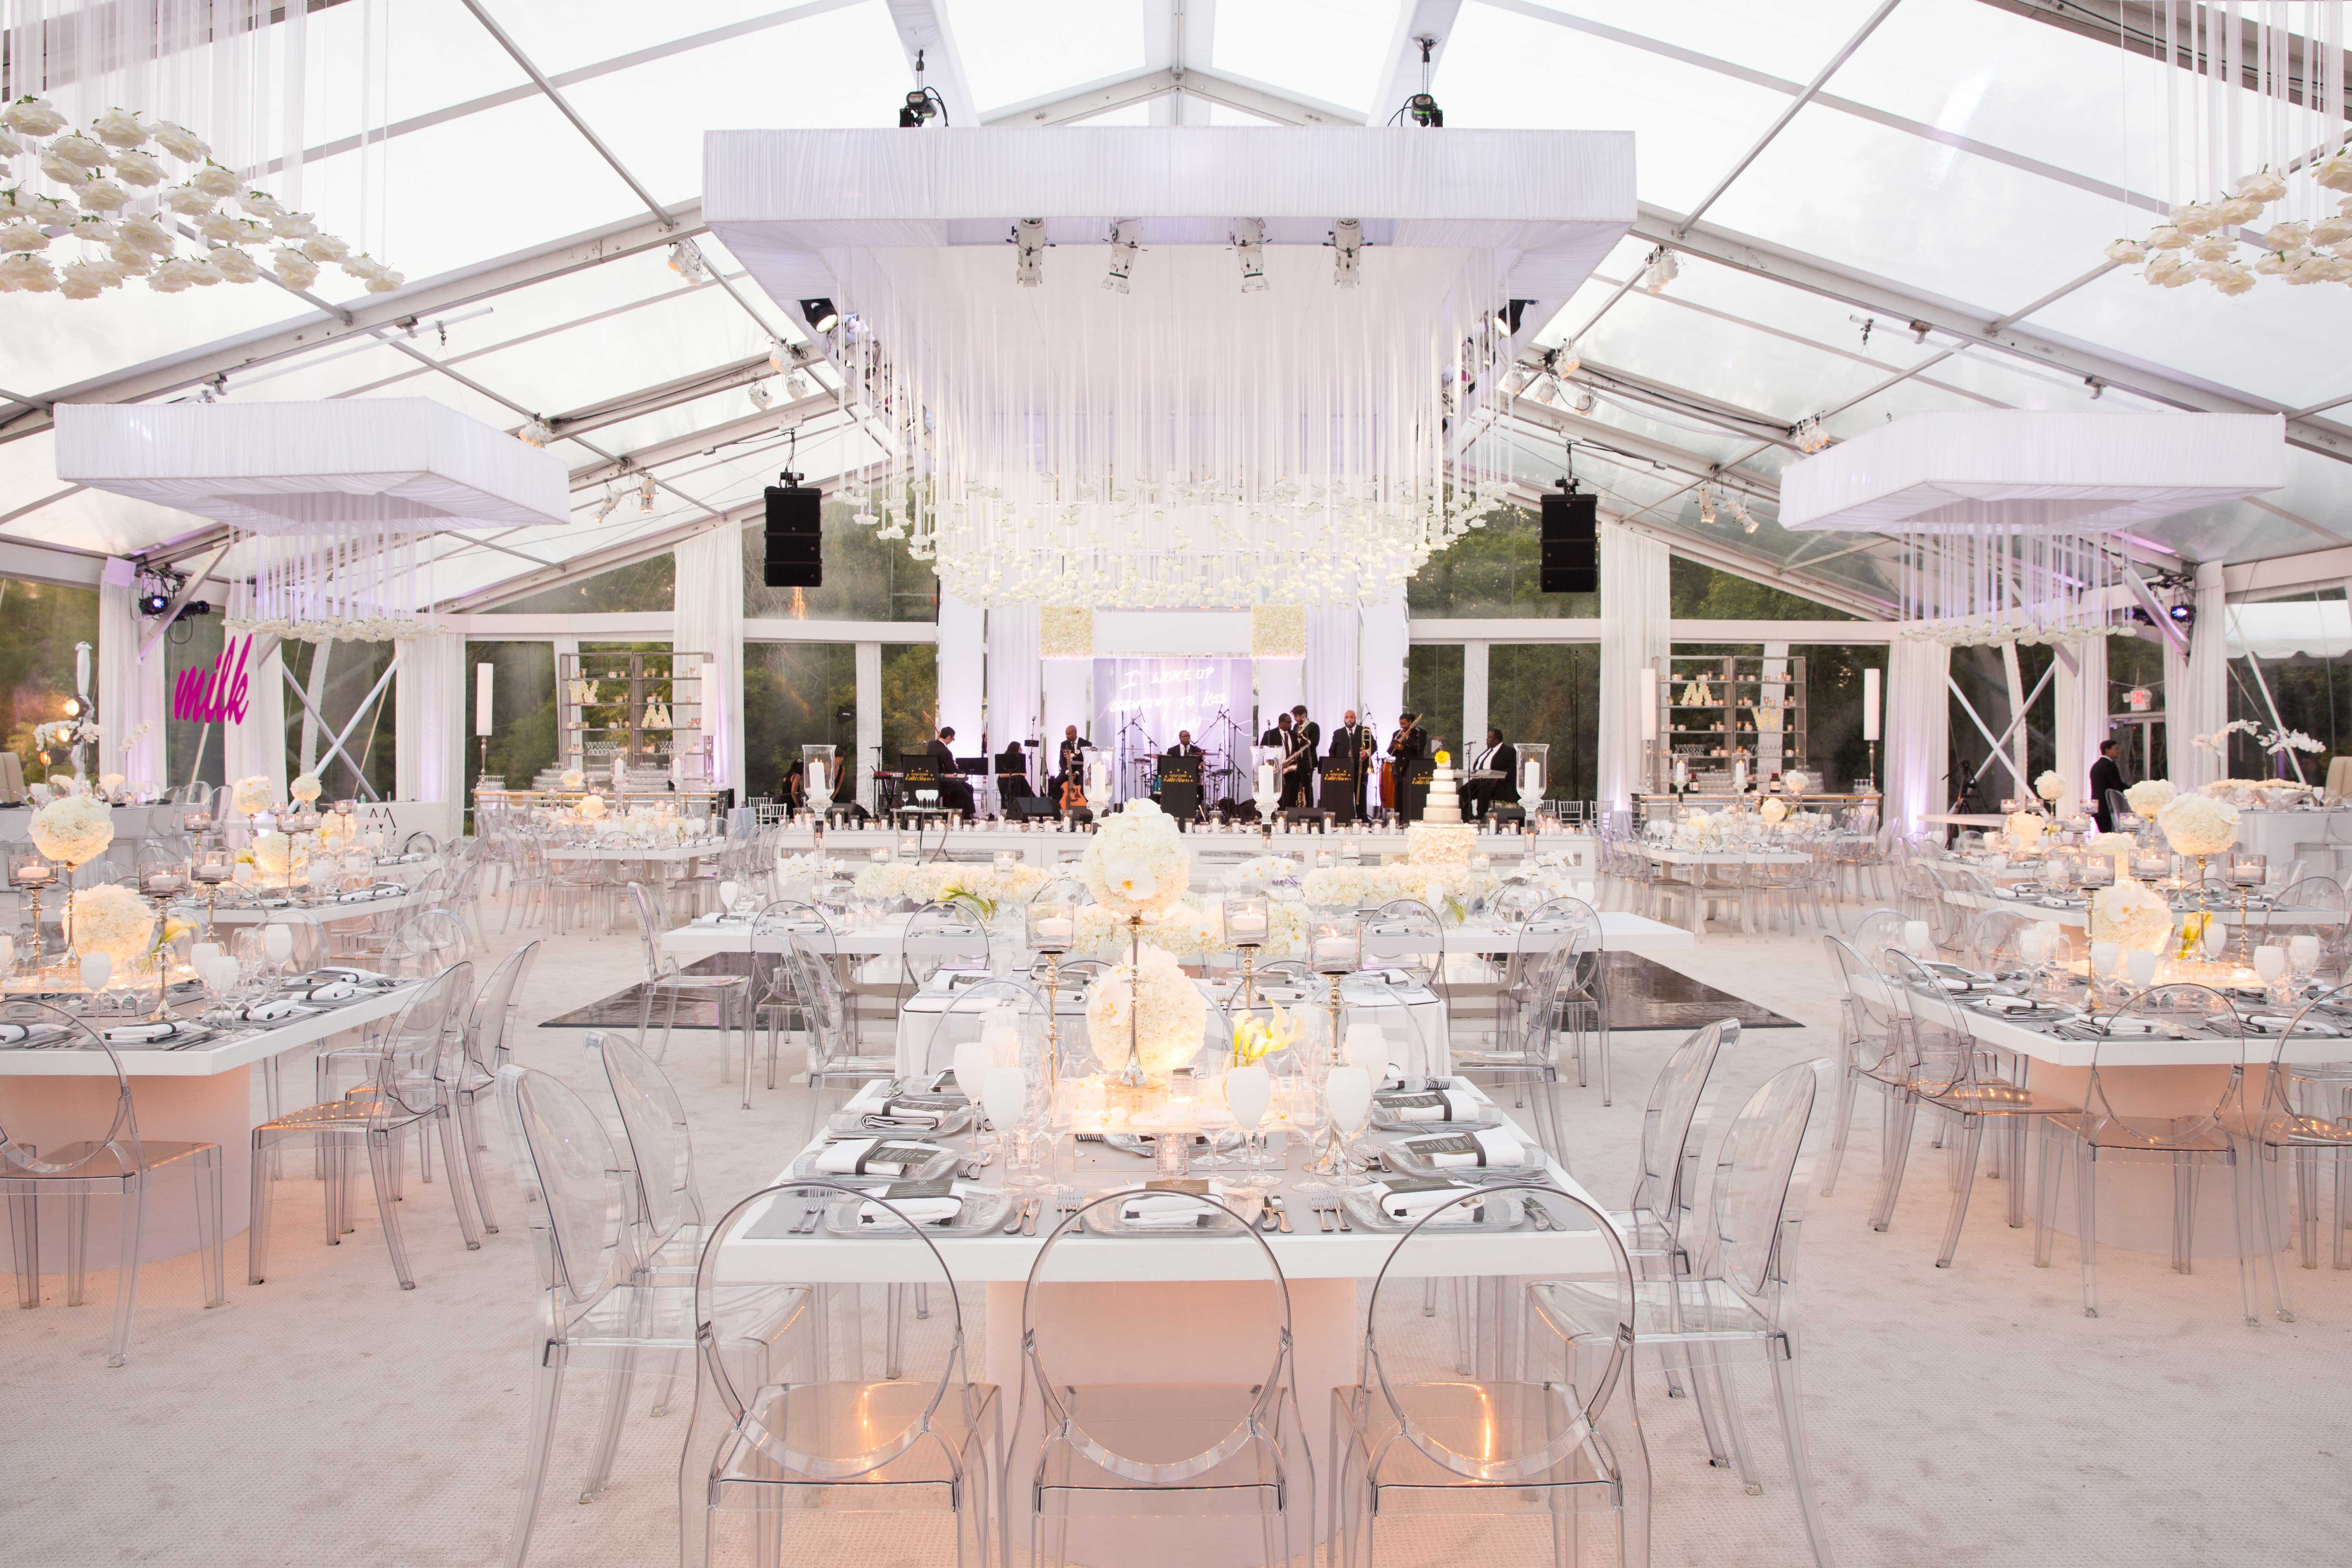 popular real wedding inside weddings hmr designs modern reception tent white clear decor the day by ira lippke